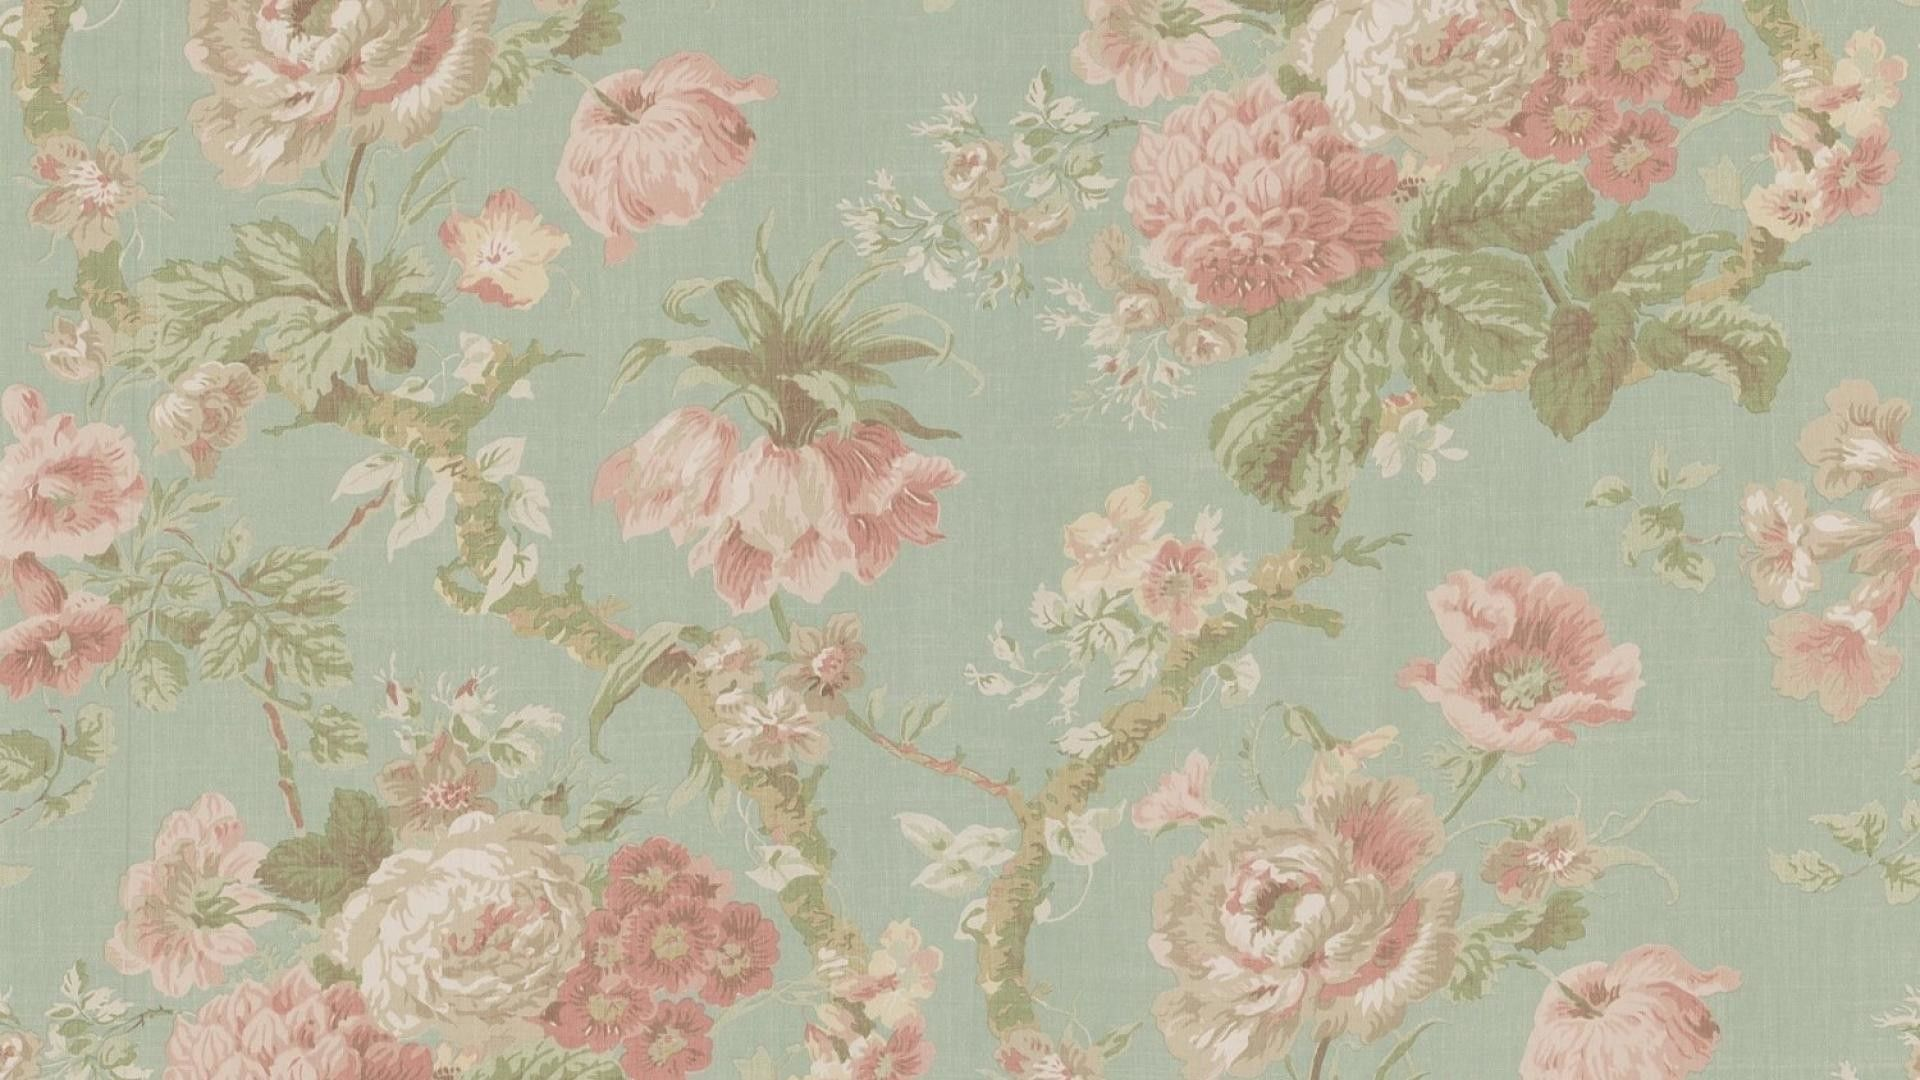 Vintage Floral Computer Wallpapers Top Free Vintage Floral Computer Backgrounds Wallpaperaccess